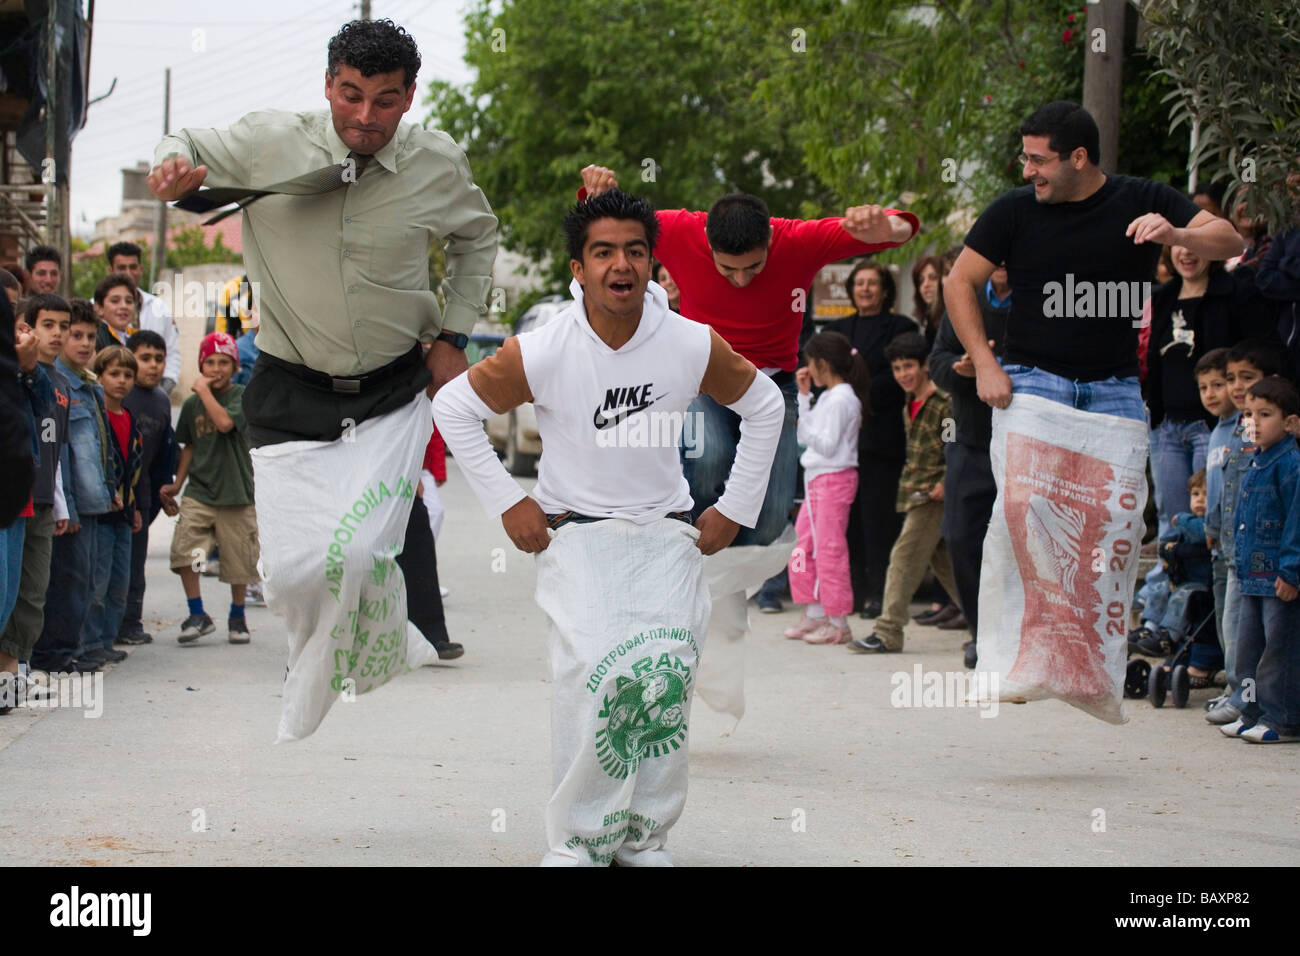 A group of men taking part in a sack race at the Easter games, Kathikas, South Cyprus, Cyprus - Stock Image